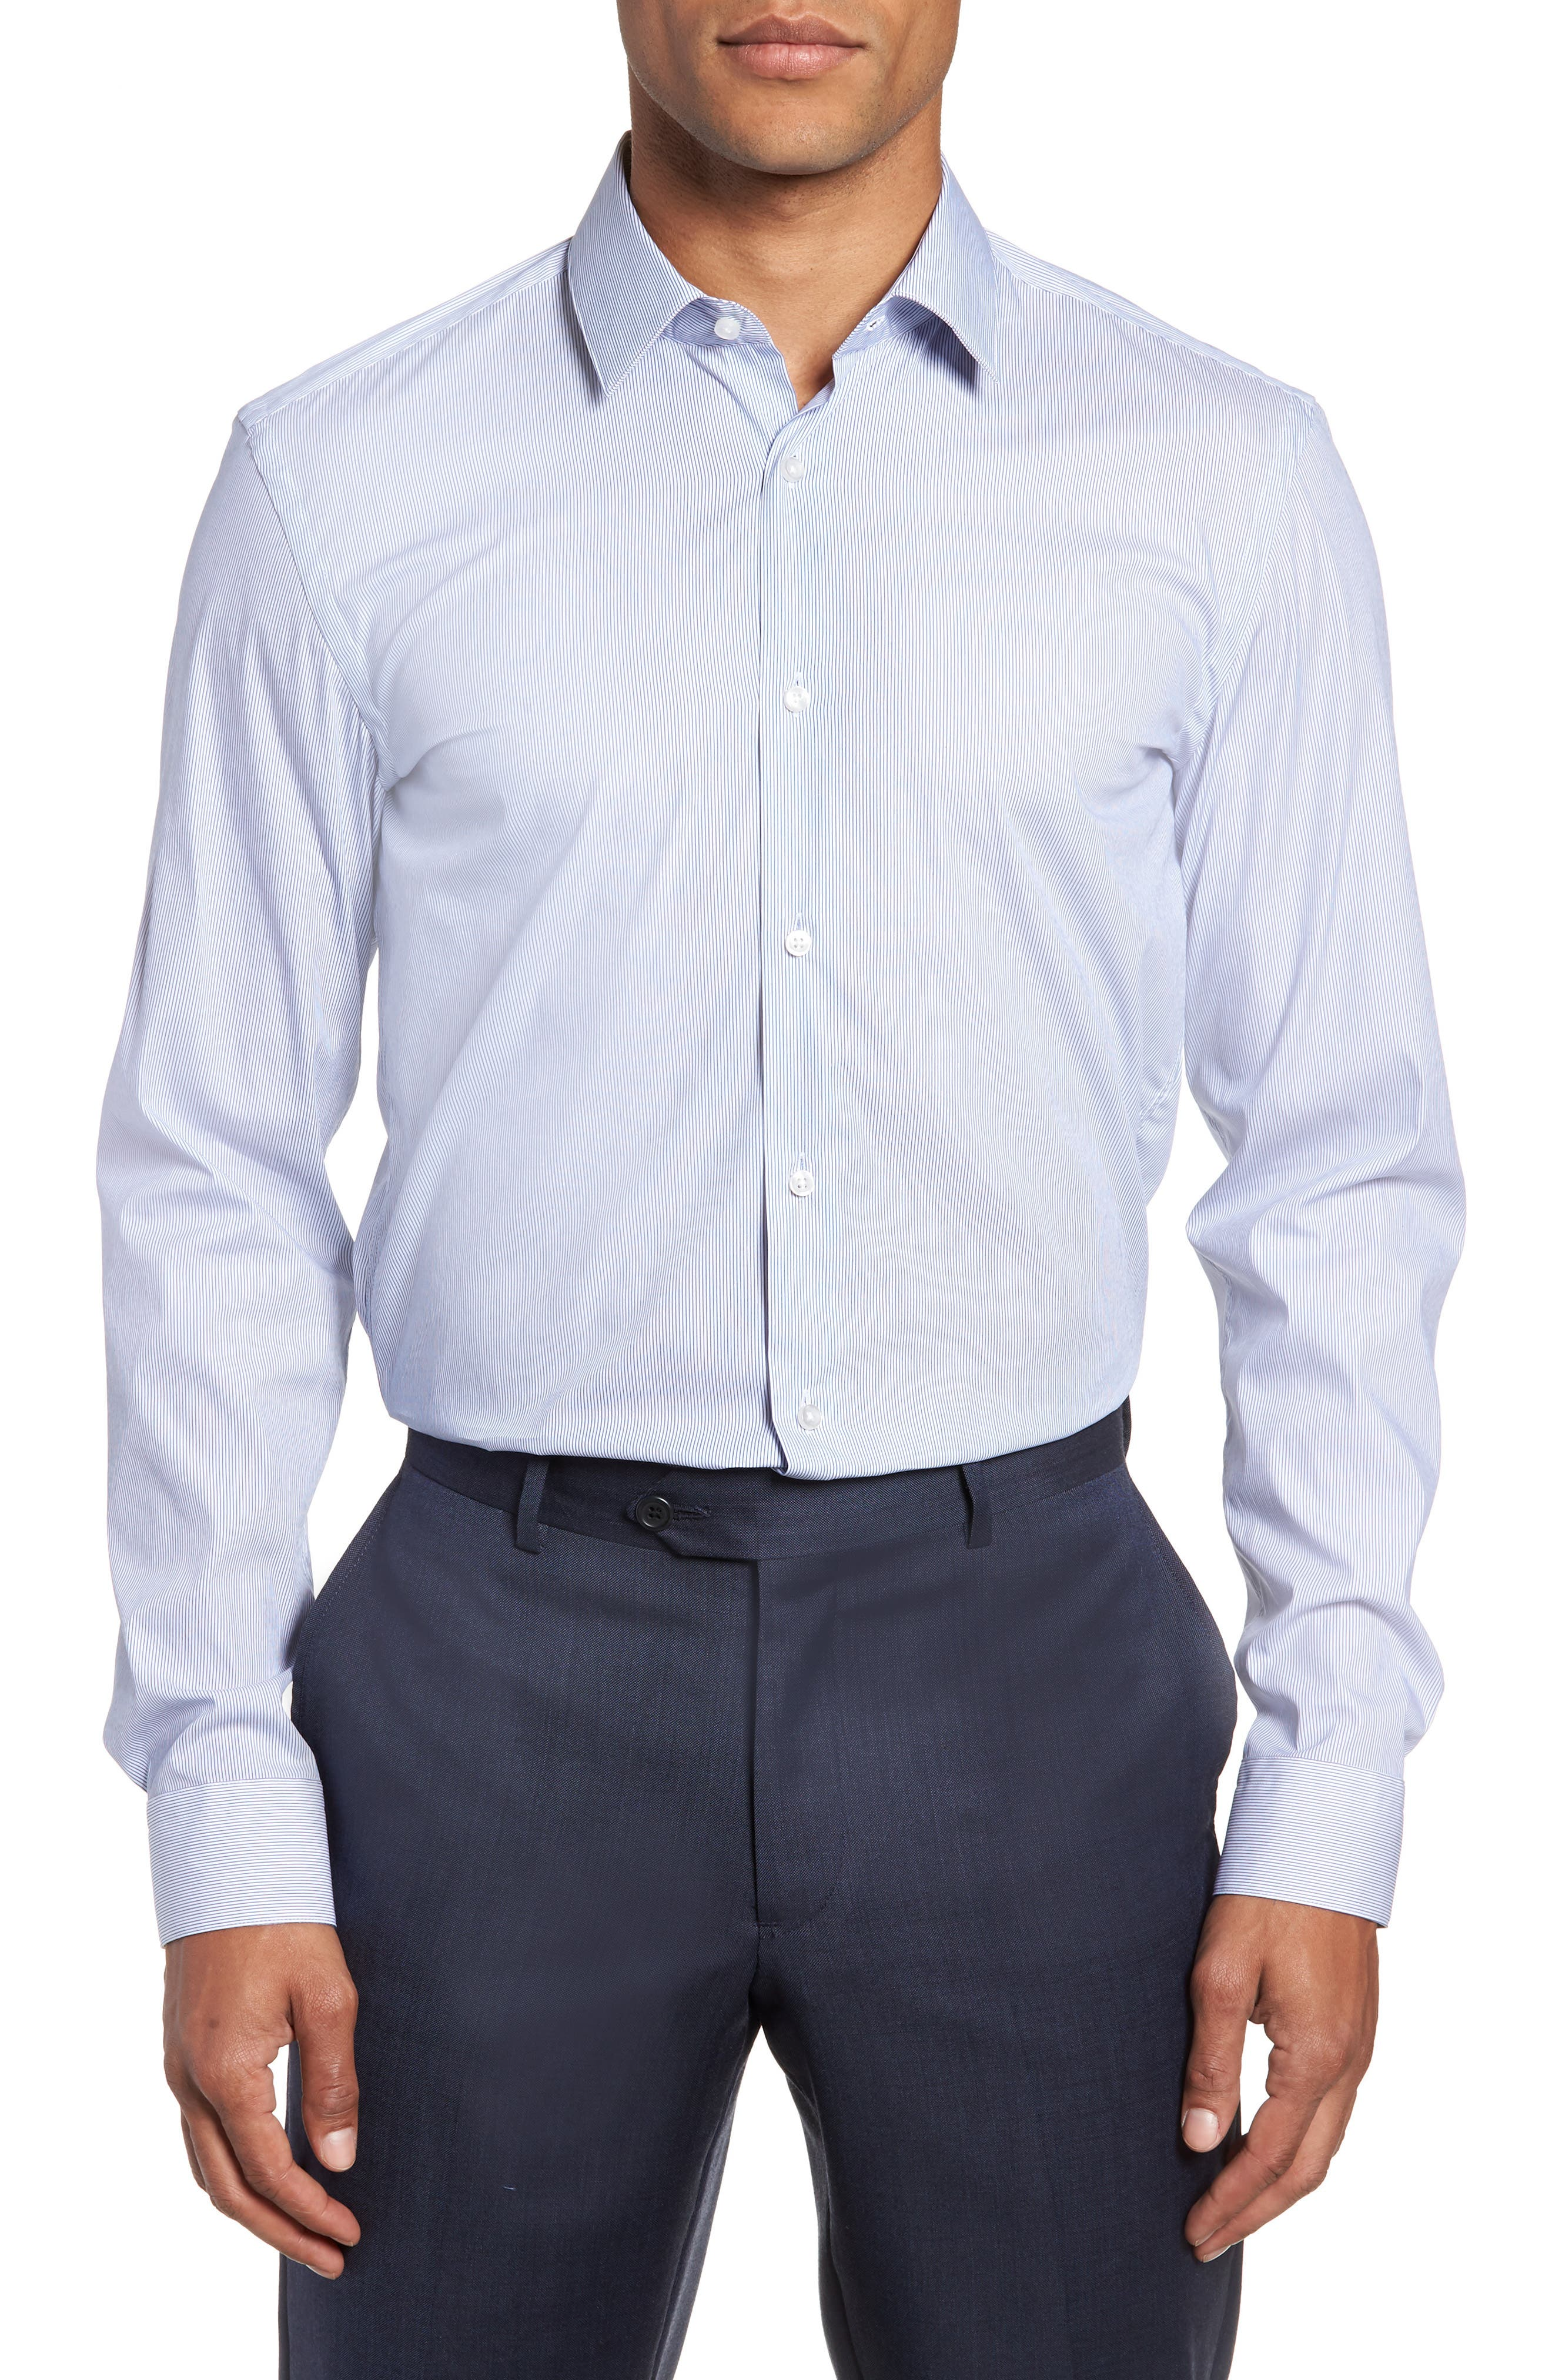 Isko Slim Fit Stretch Stripe Dress Shirt,                         Main,                         color, BLUE